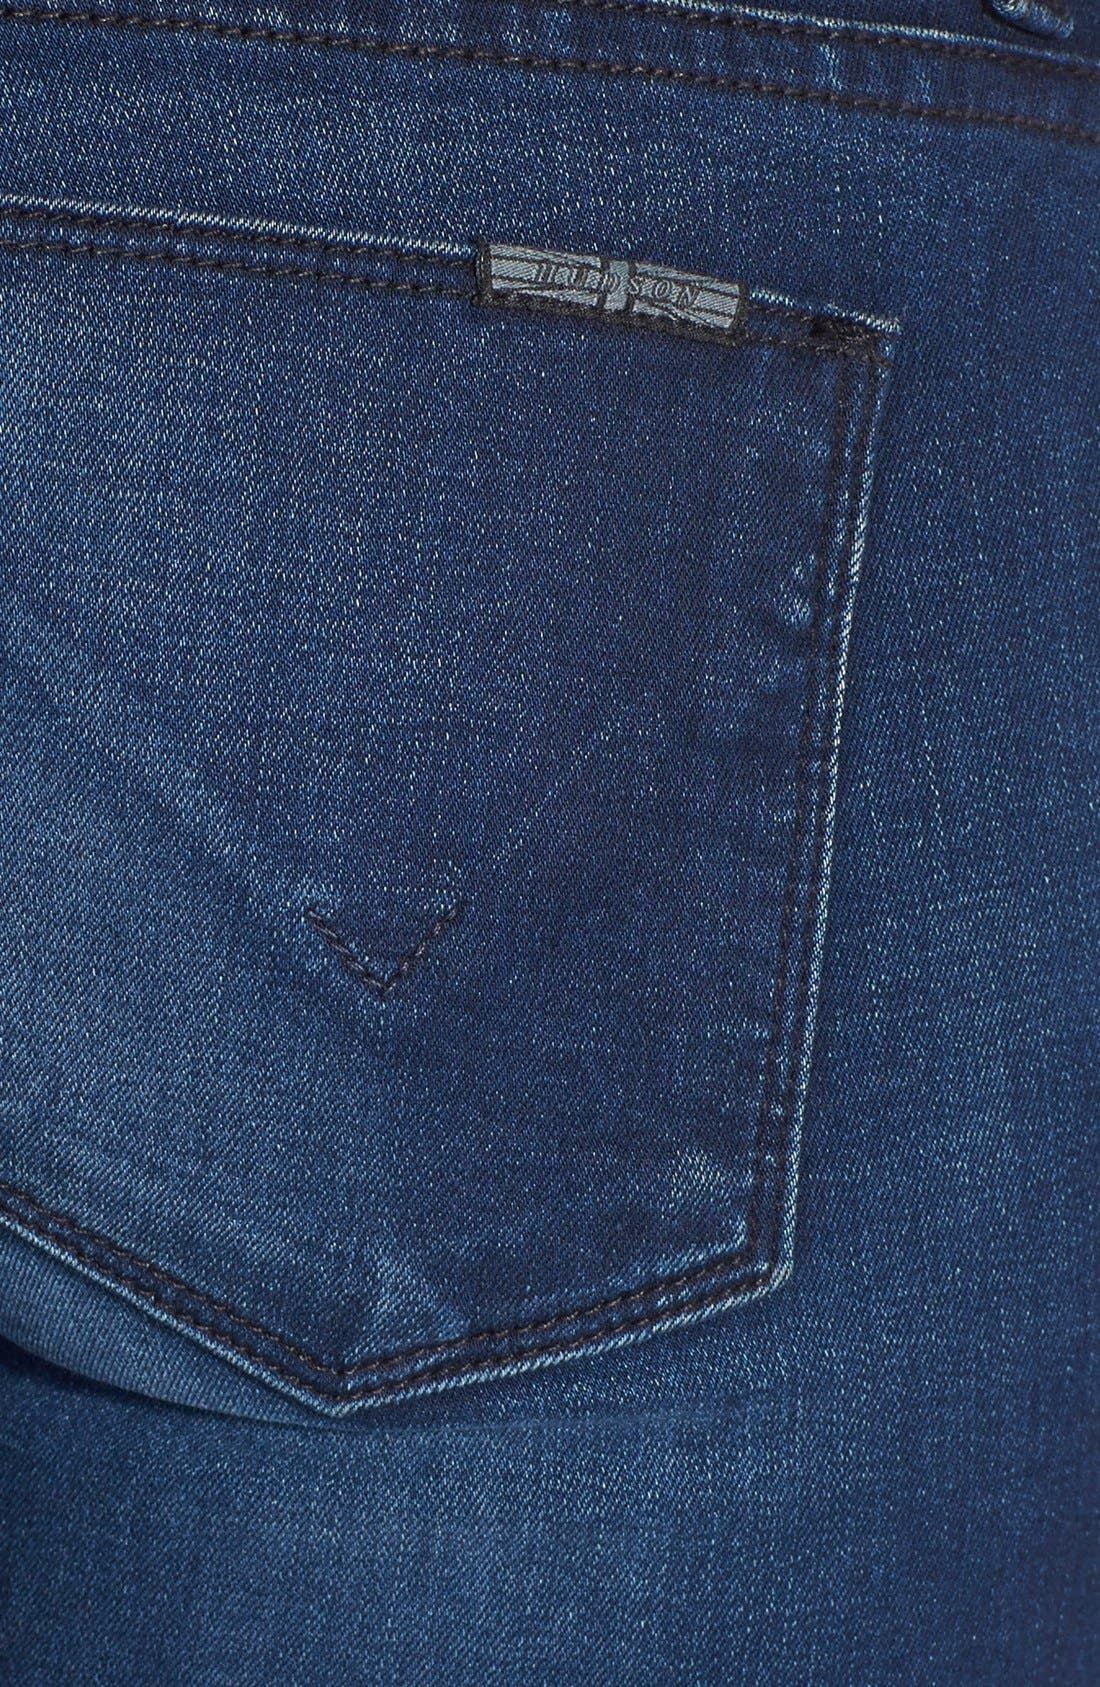 Alternate Image 3  - Hudson Jeans 'Krista' Super Skinny Crop Jeans (Contrary)